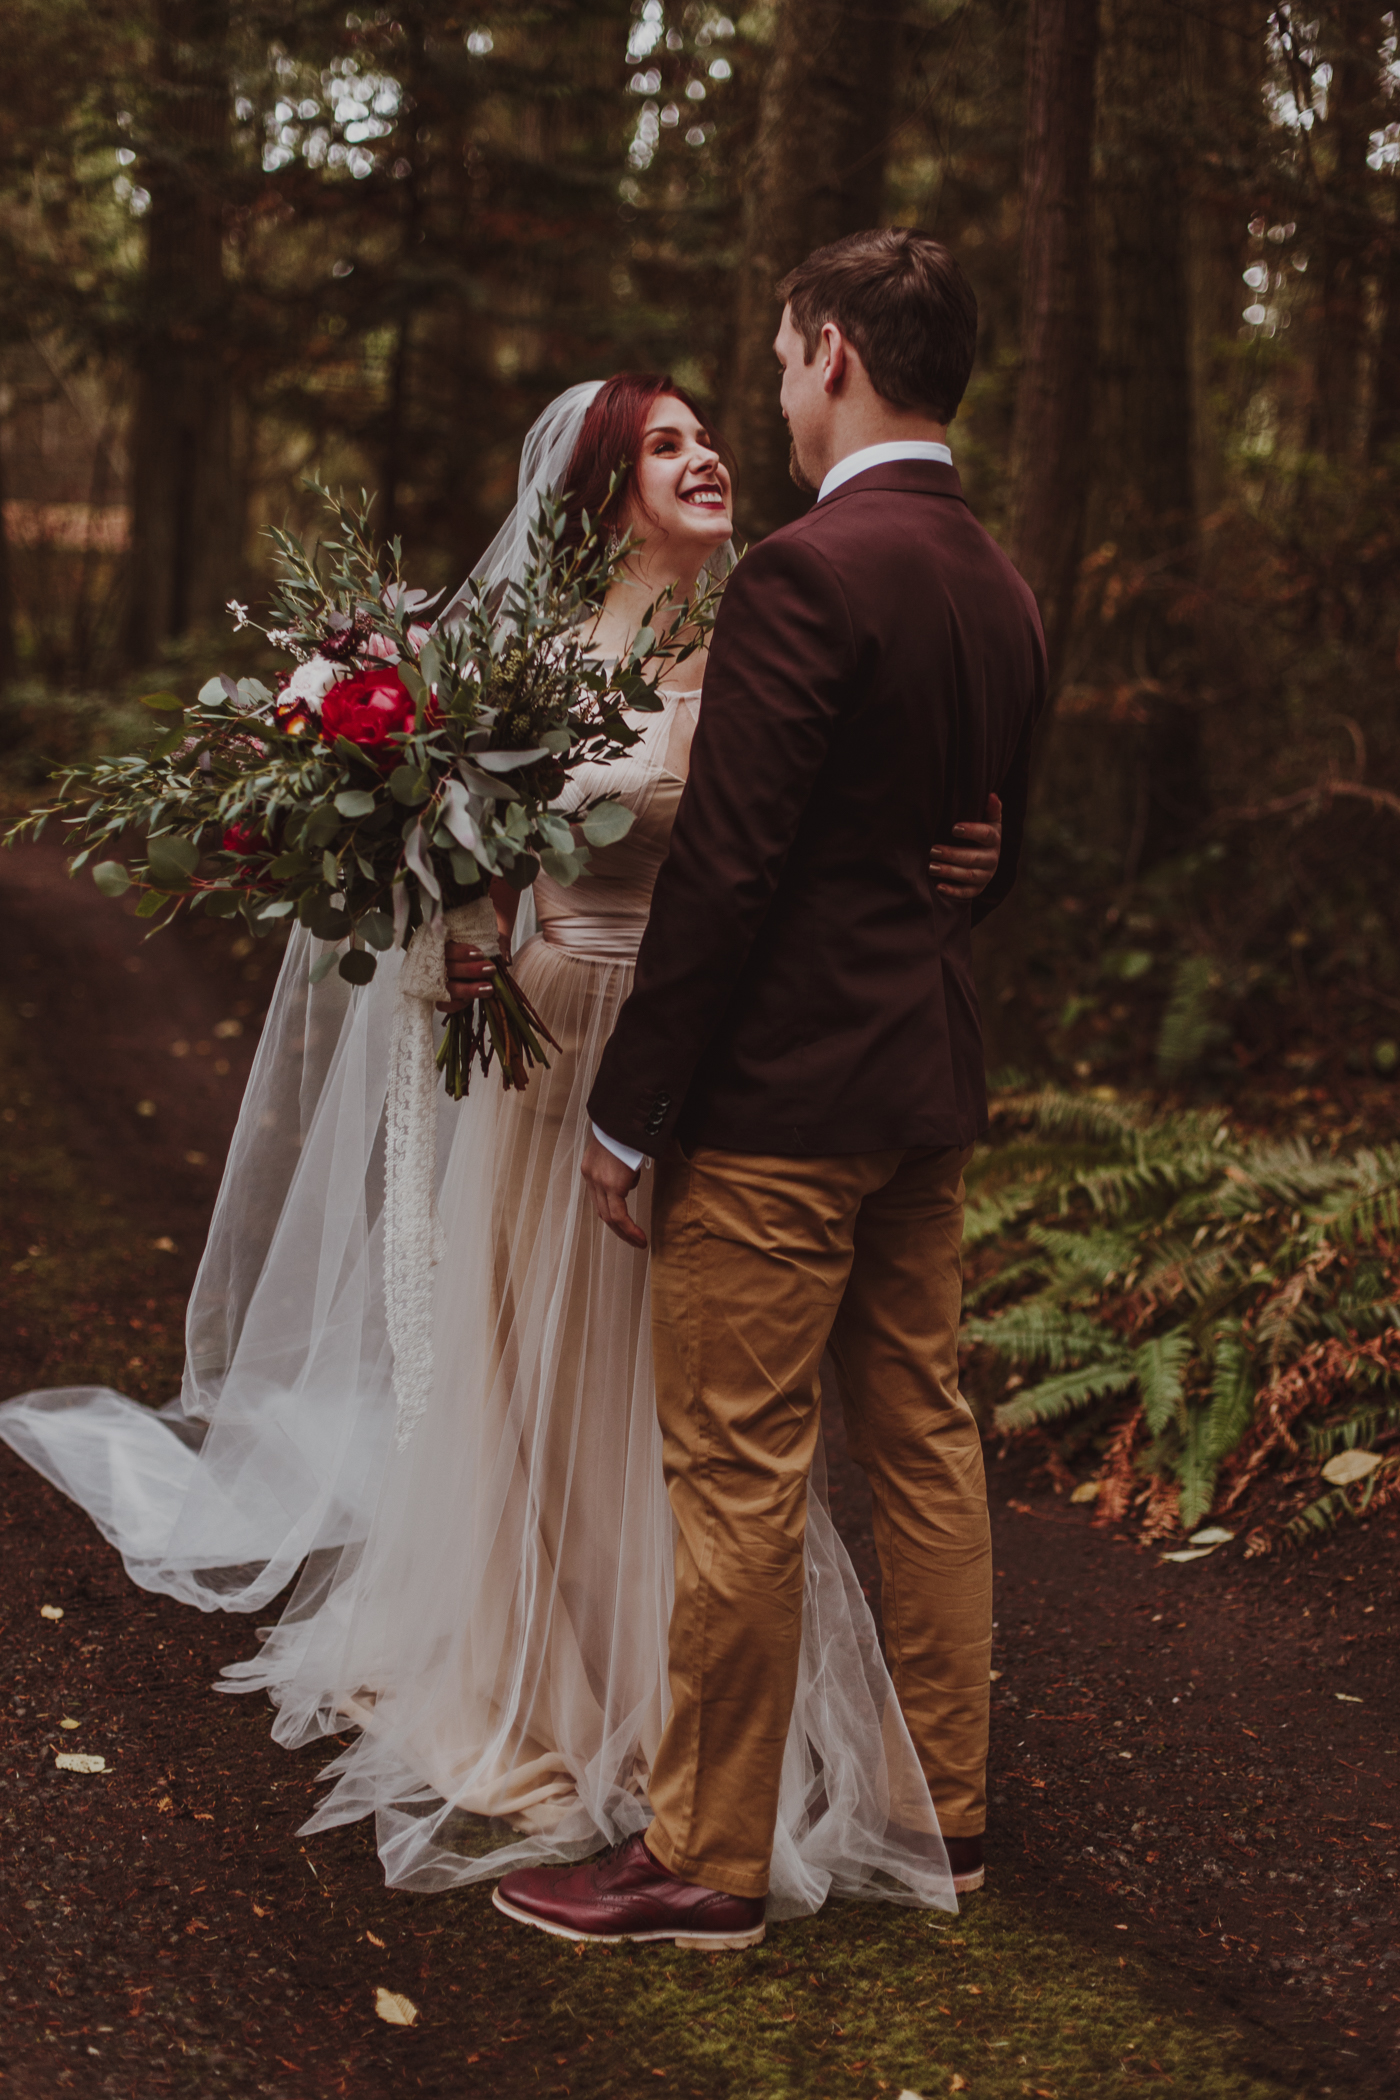 Olympic Peninsula Elopement-LizMorrow-31.jpg